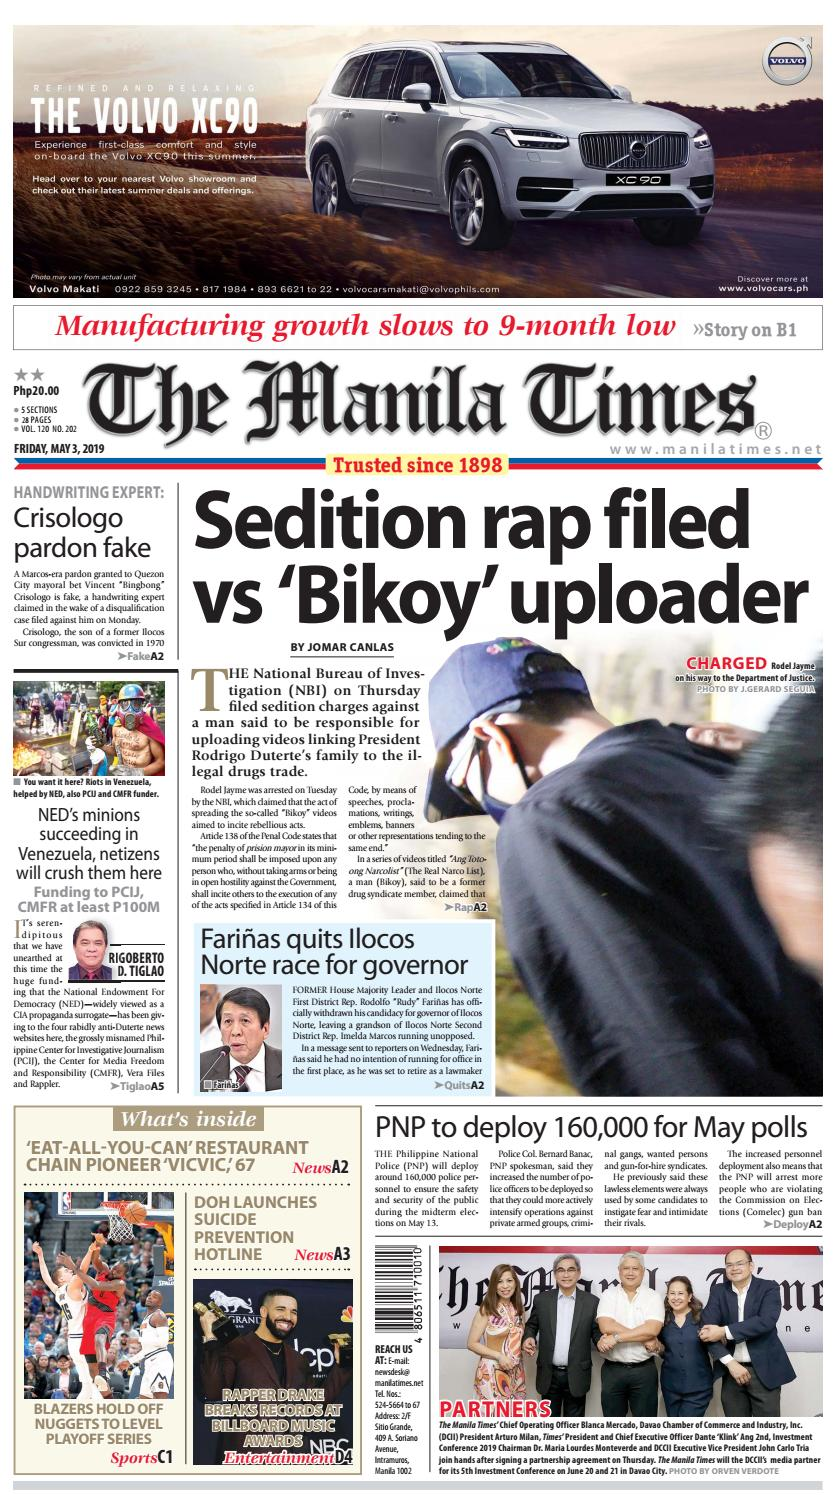 THE MANILA TIMES   MAY 03, 2019 by The Manila Times - issuu